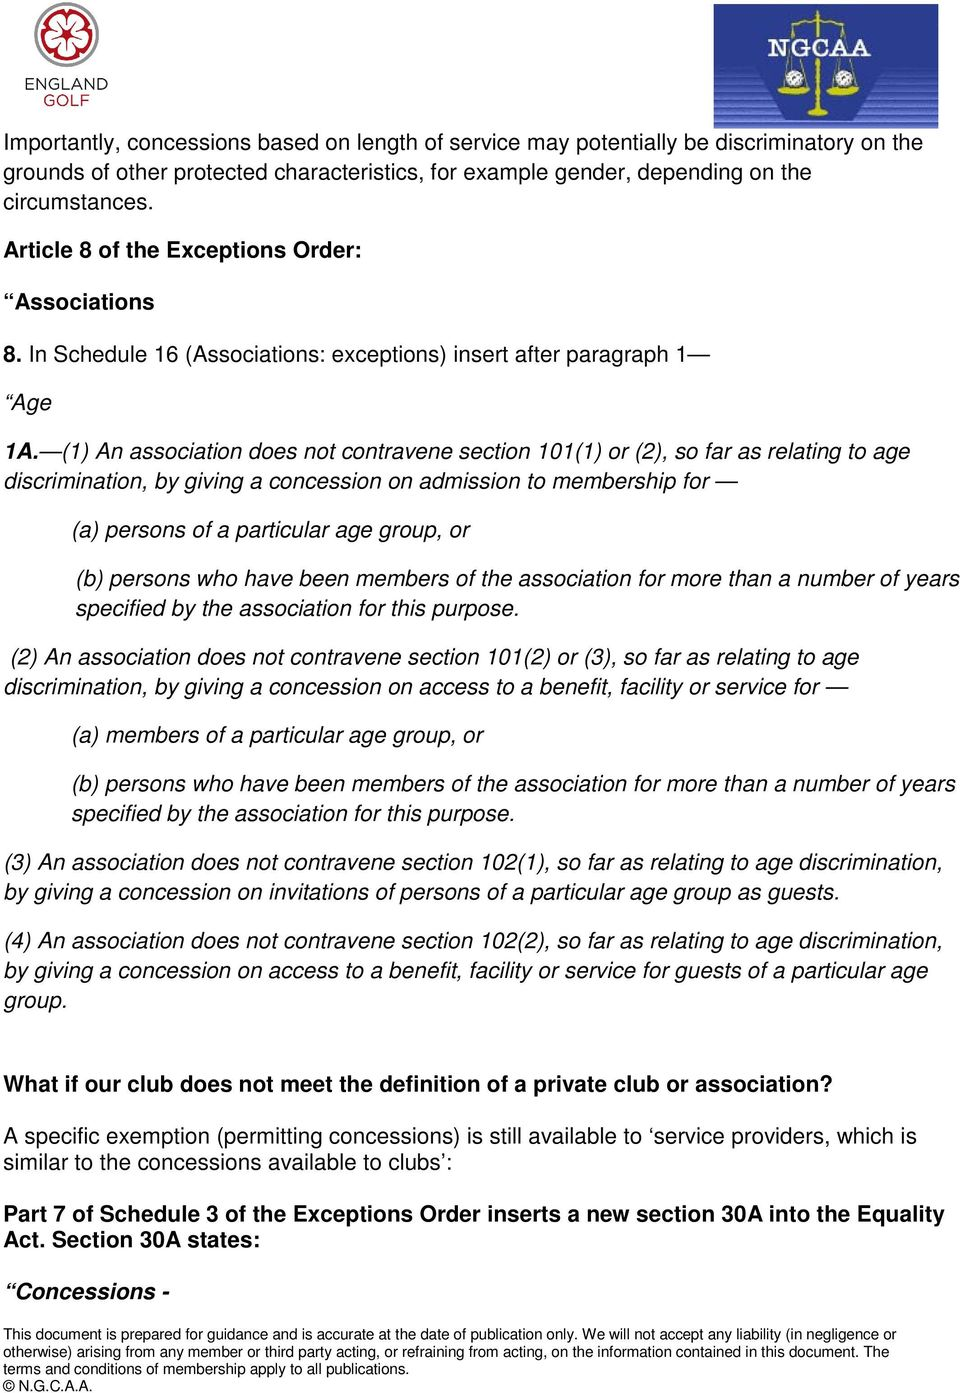 (1) An association does not contravene section 101(1) or (2), so far as relating to age discrimination, by giving a concession on admission to membership for (a) persons of a particular age group, or